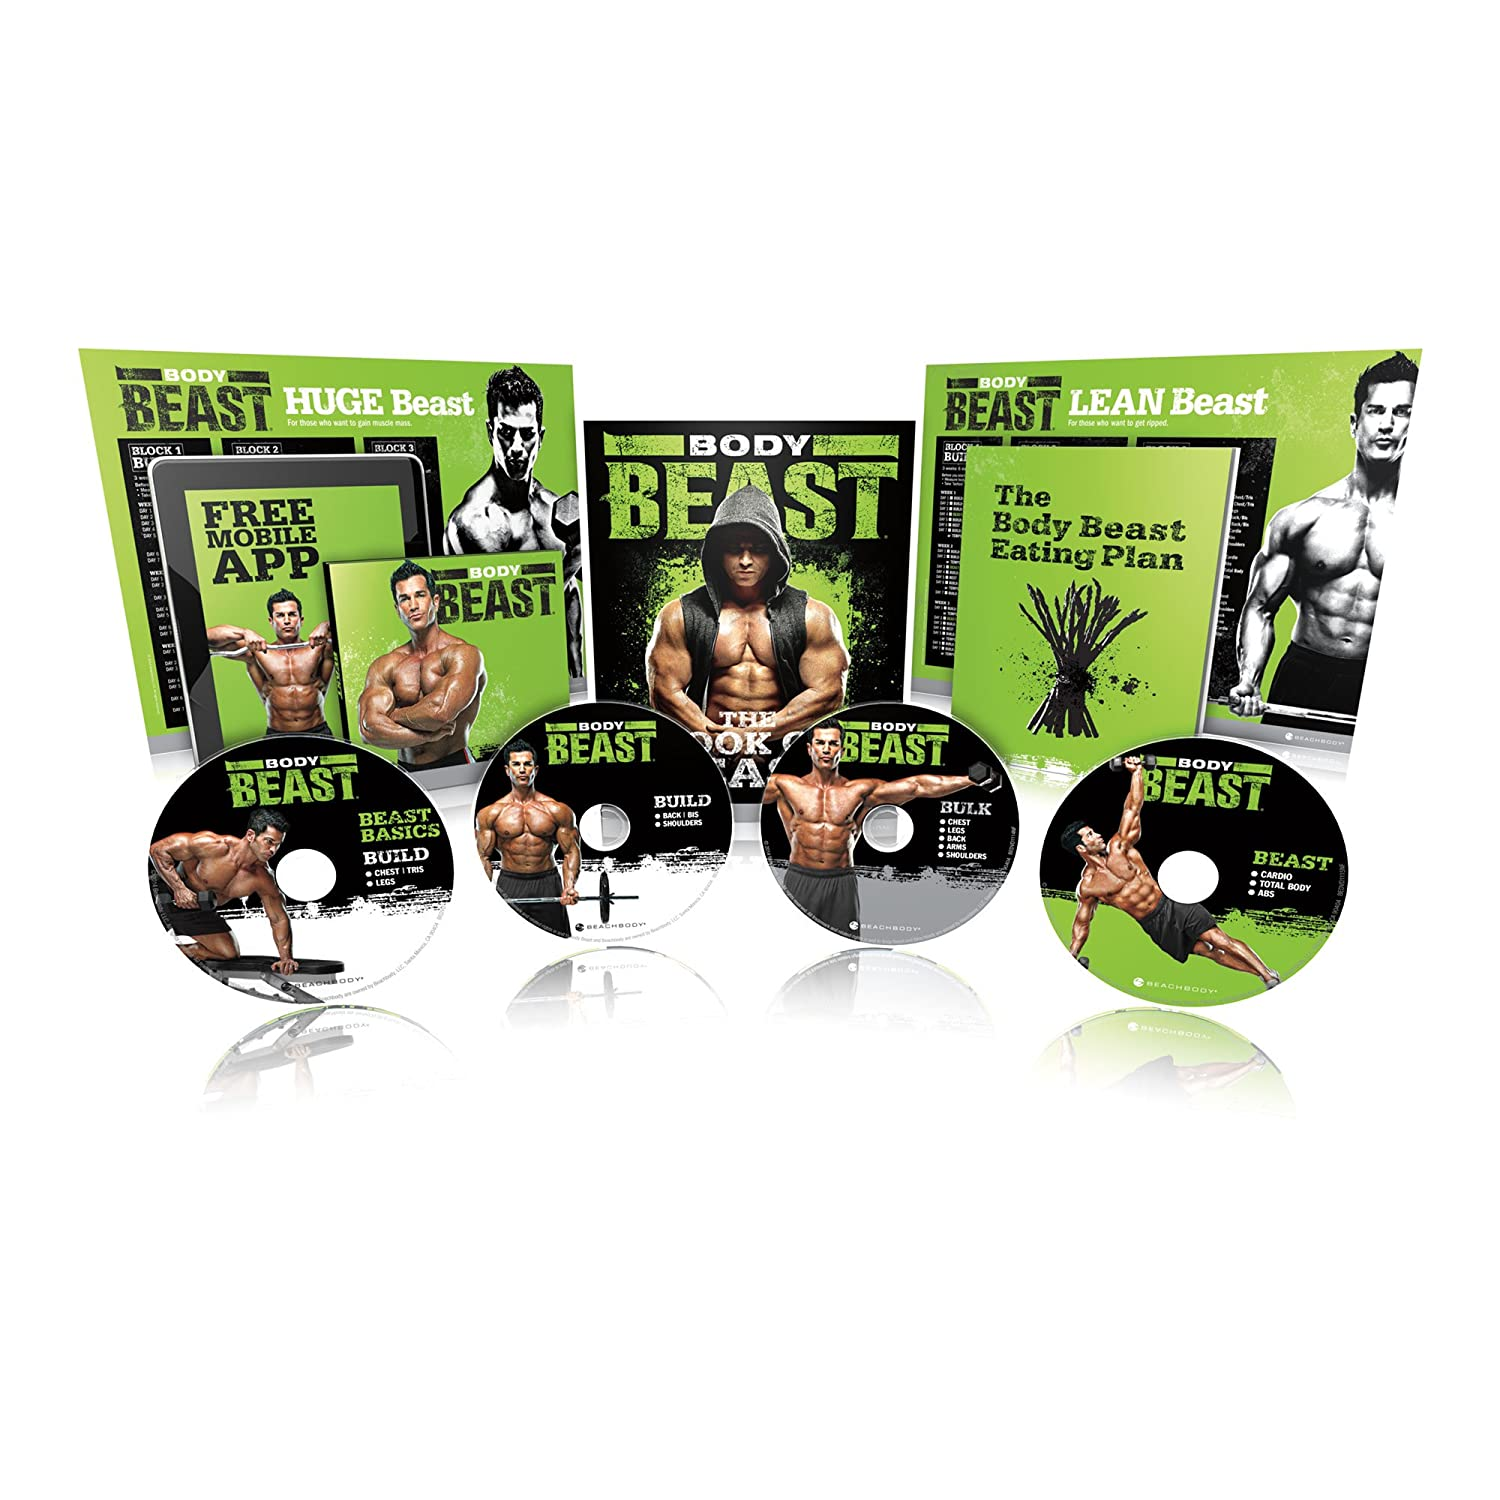 Body Beast DVD Workout Base Kit 90 Day Lean Muscle Build 10 lbs New